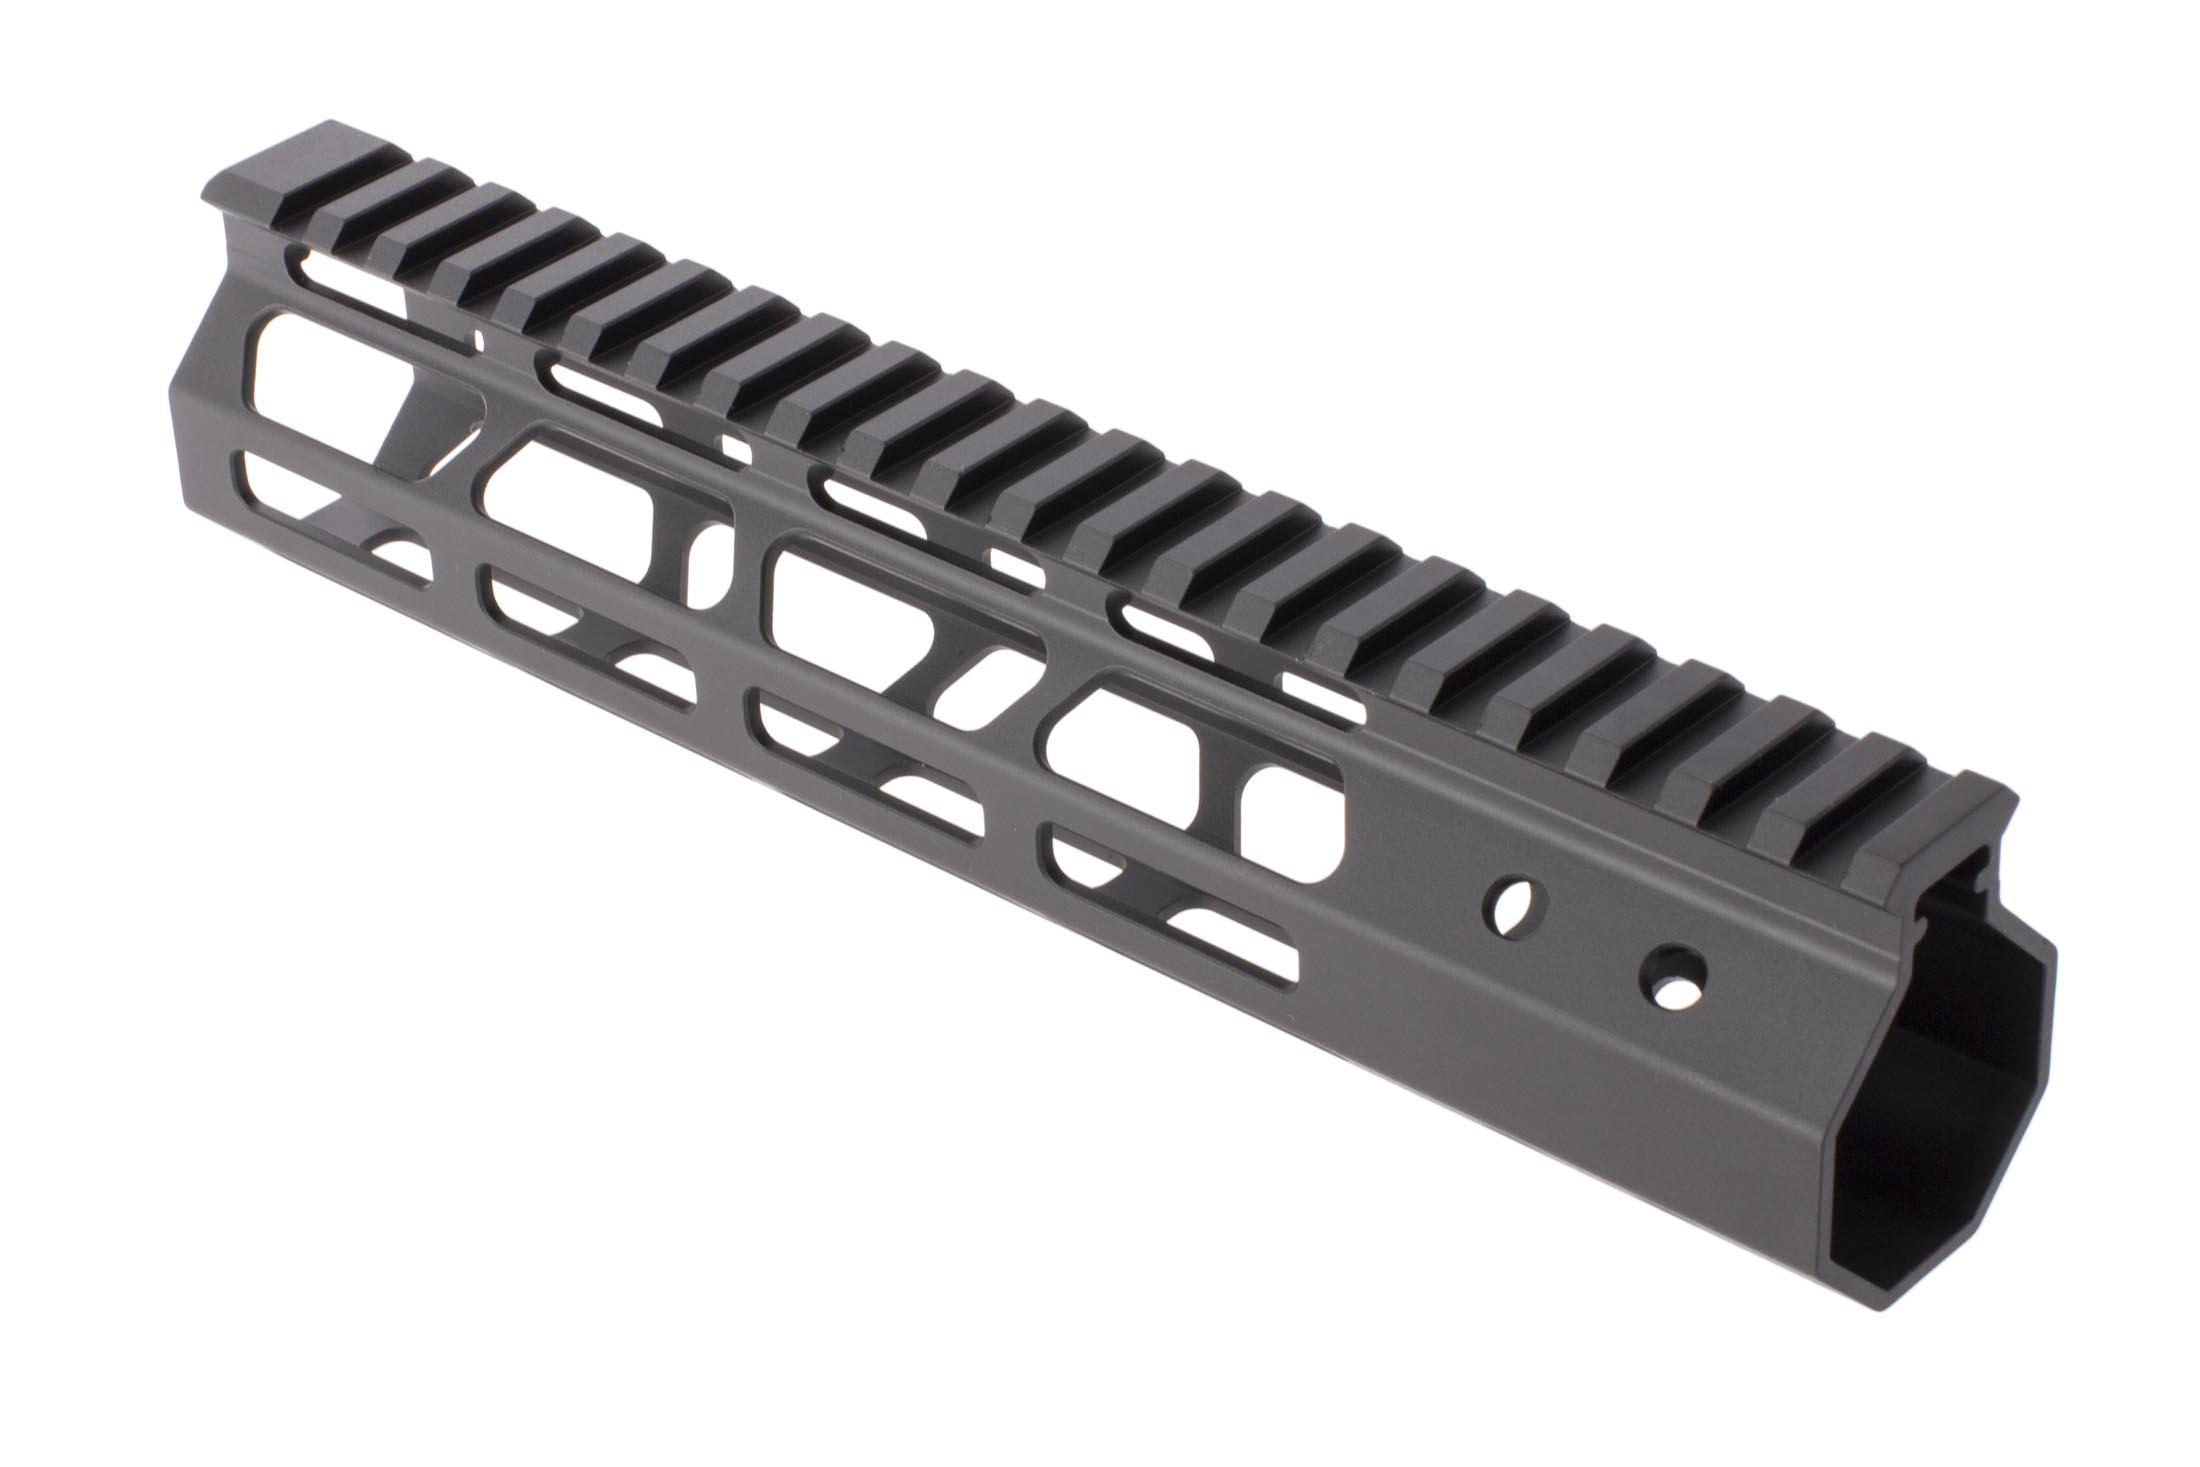 FM Products 8.5in Ultra Light Gen II handguard features an ergonomic septagonal profile